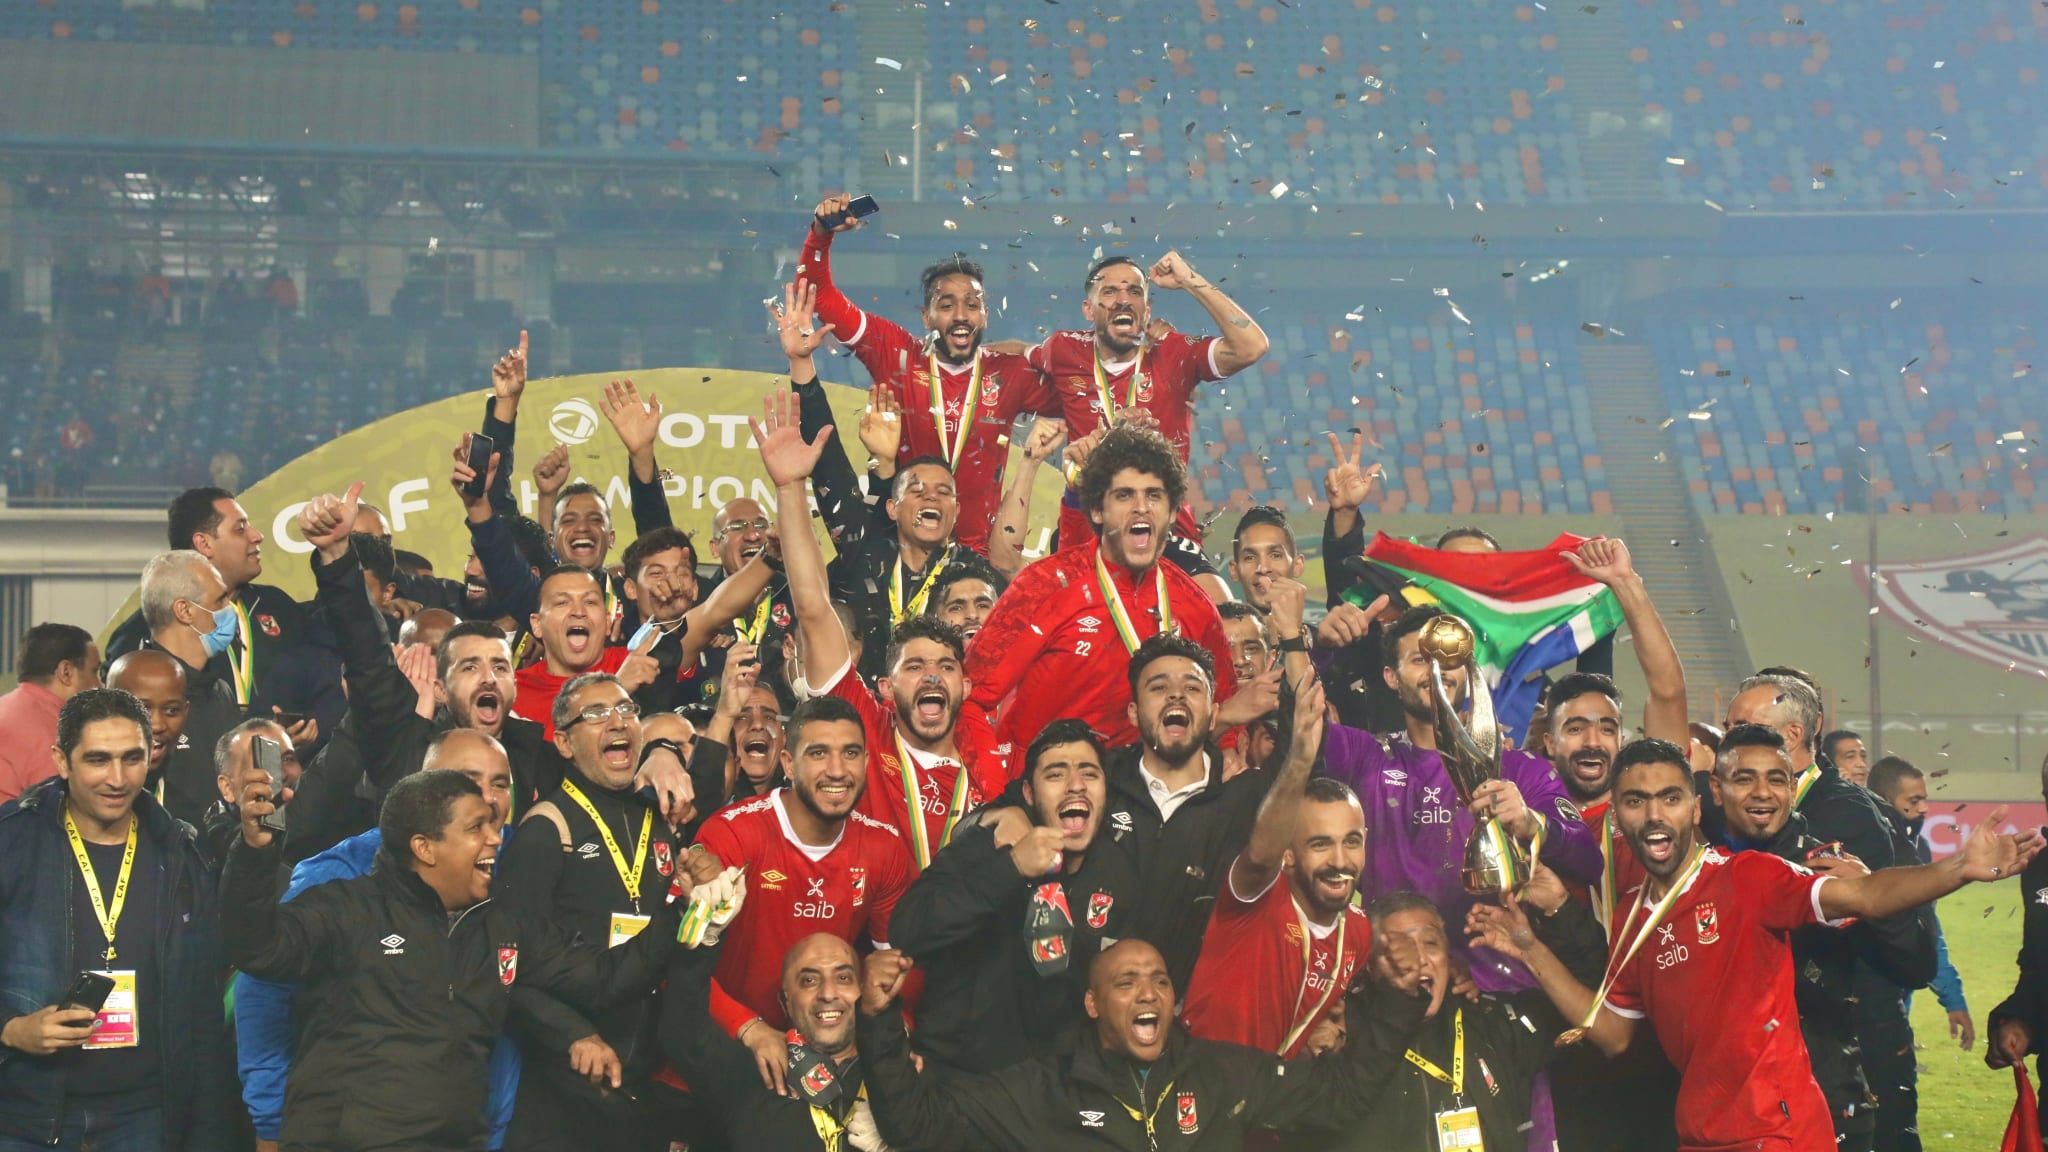 Al Ahly players celebrate with the trophy after winning the CAF champions league final against Zamalek